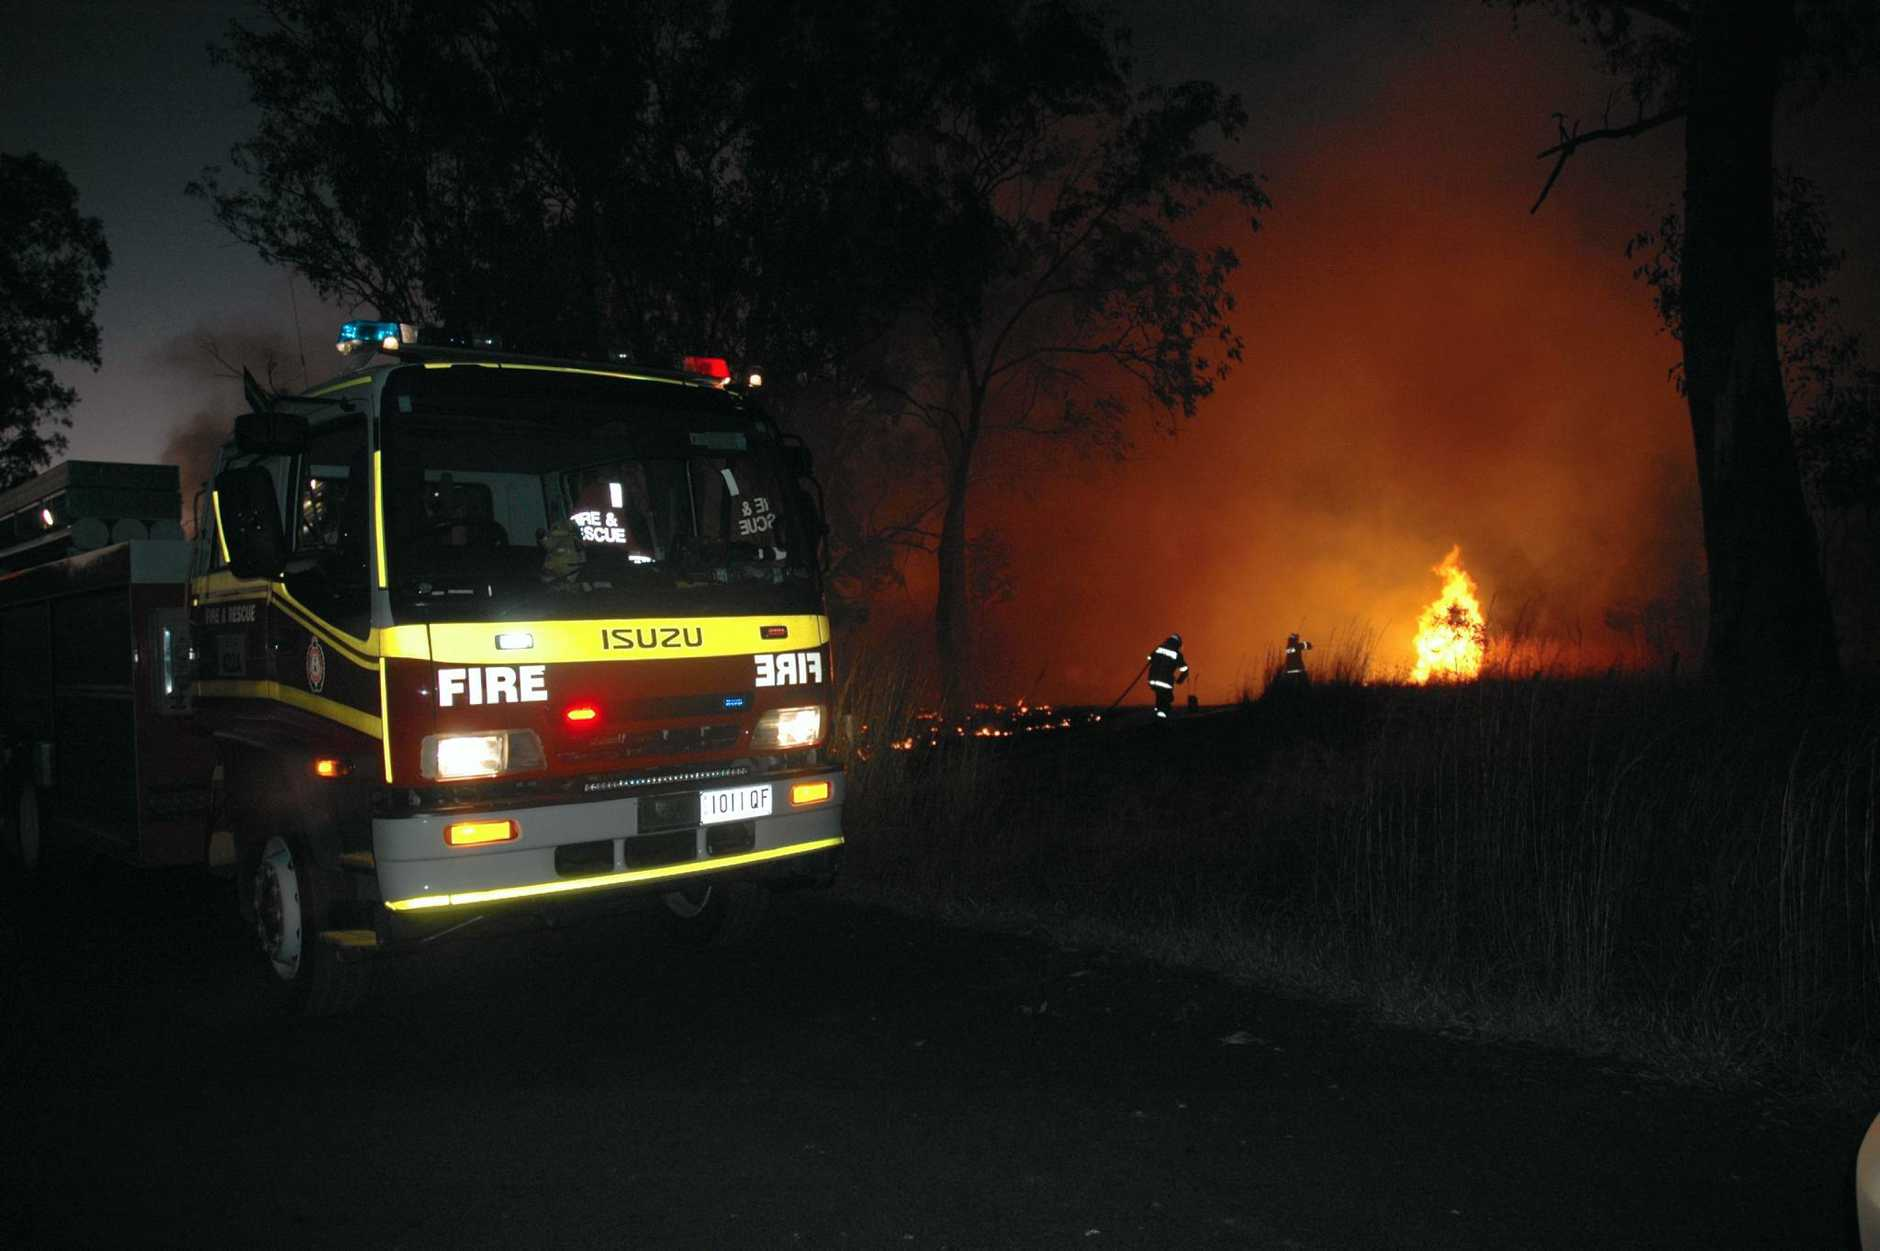 The state's new volunteer advisory forum will have representatives from the Rural Fire Service, State Emergency Service, Surf Life Saving Queensland, Volunteering Queensland and other groups.